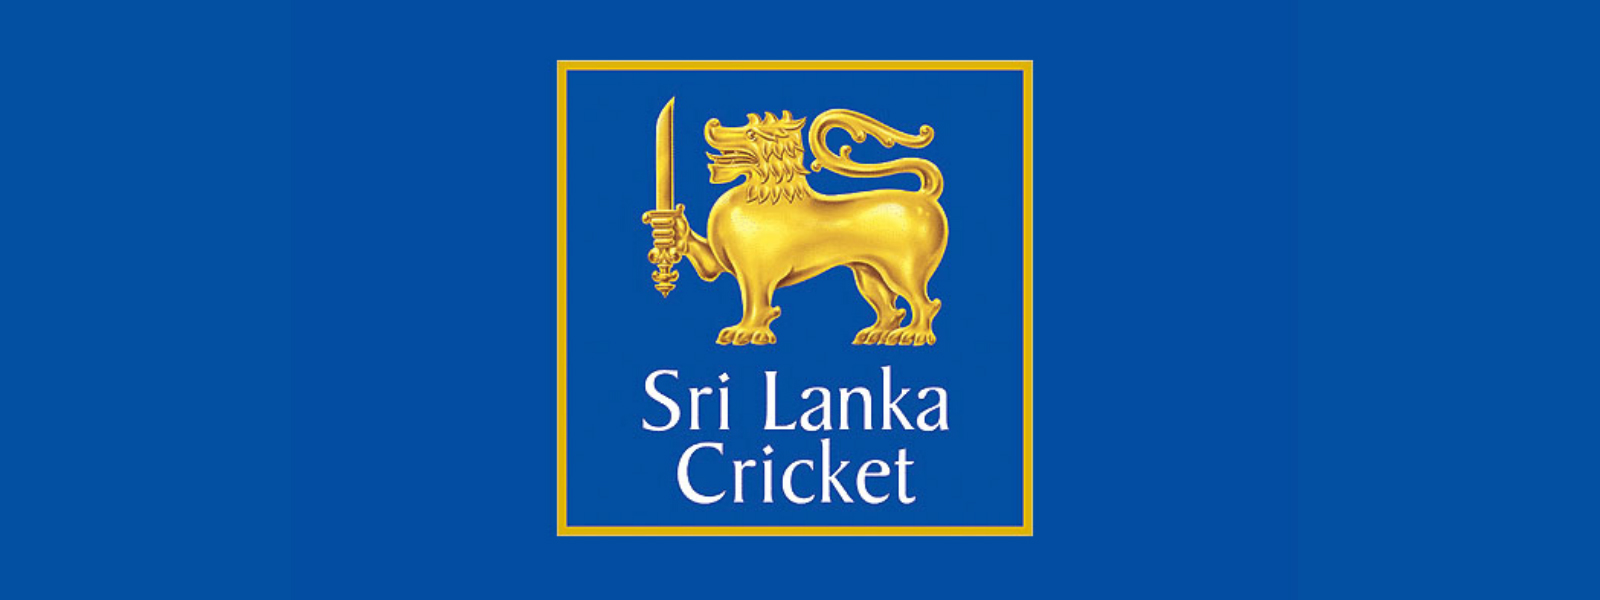 Why is SLC paying hefty salary to Chandika Hathurusinghe?